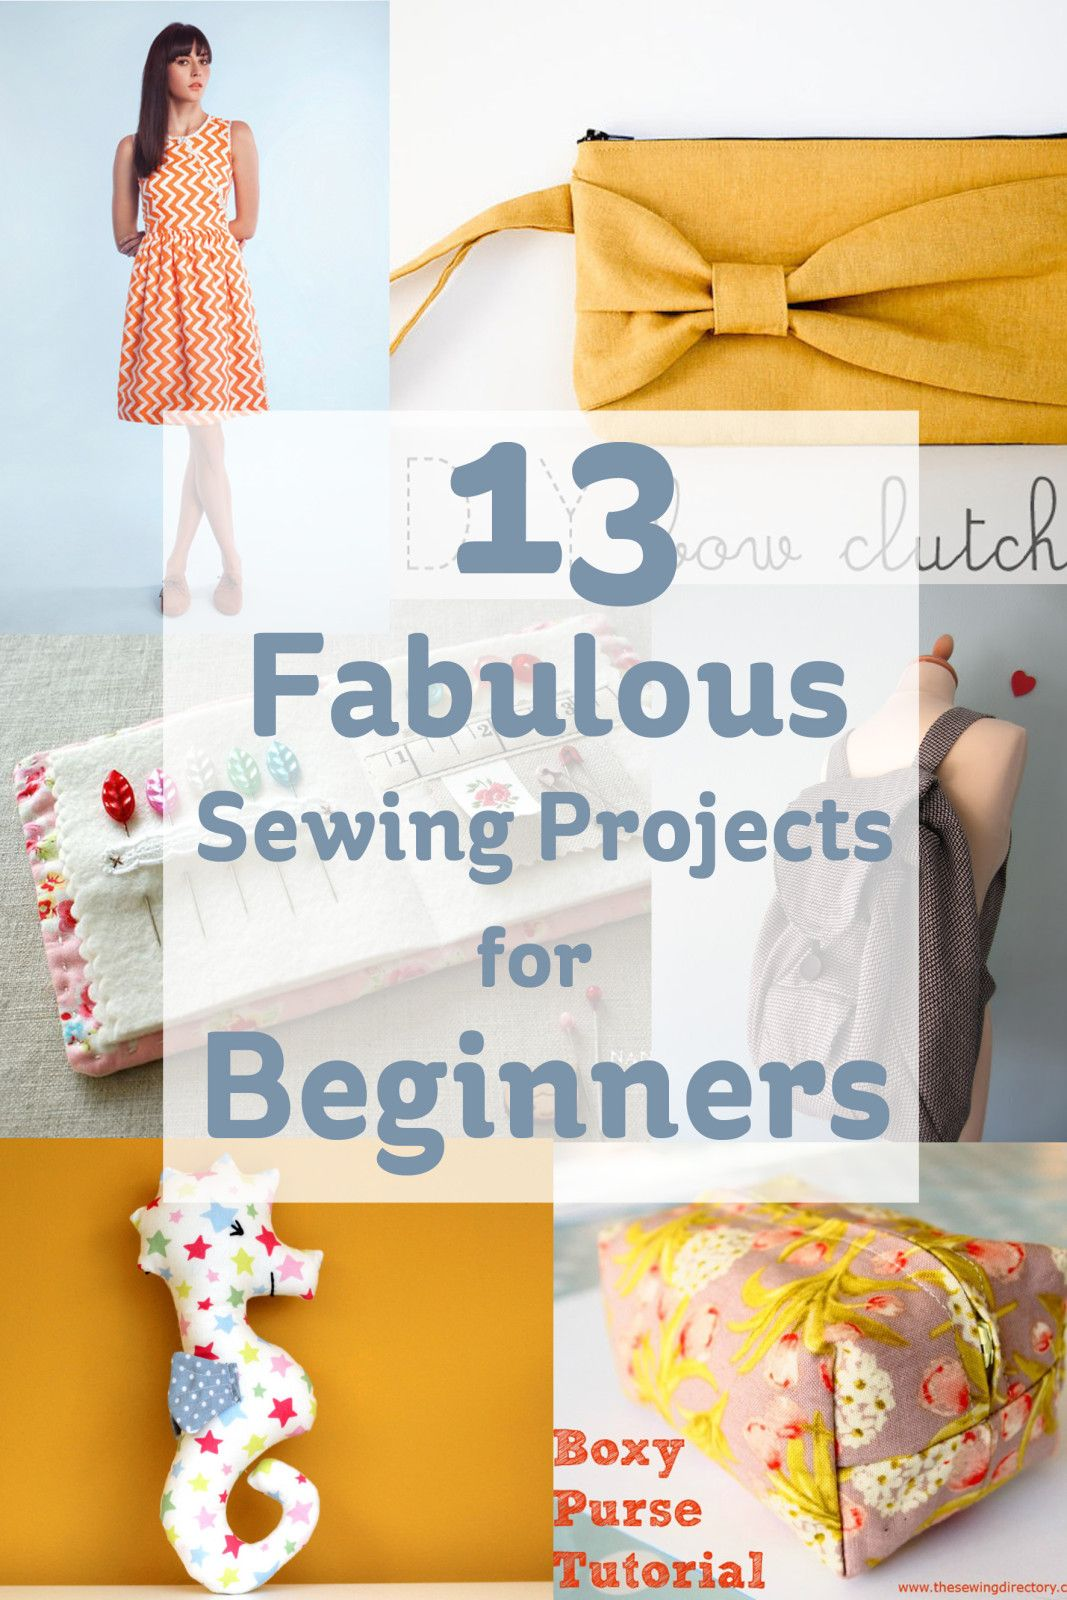 13 Fabulous Sewing Projects for Beginners | Costura, El tiempo y ...